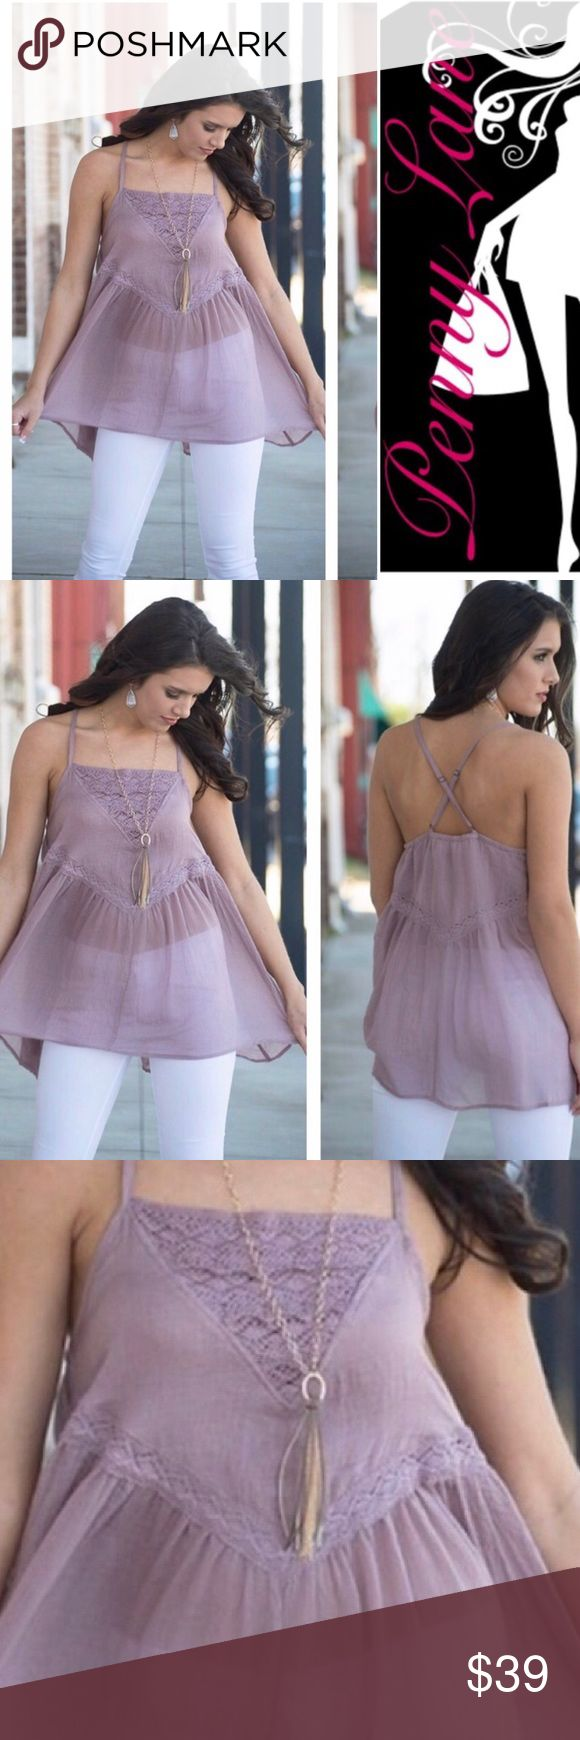 Beautiful lilac boho tank top 🌞 Absolutely beautiful and limited! Only a few available!! Lilac babydoll style tank. Lightweight, perfect for the warmer weather. Absolutely romantic!  65% Cotton 35% Polyester Measurements: Bust: 18' small, 19' medium, 20' large Infinity Raine Tops Tank Tops